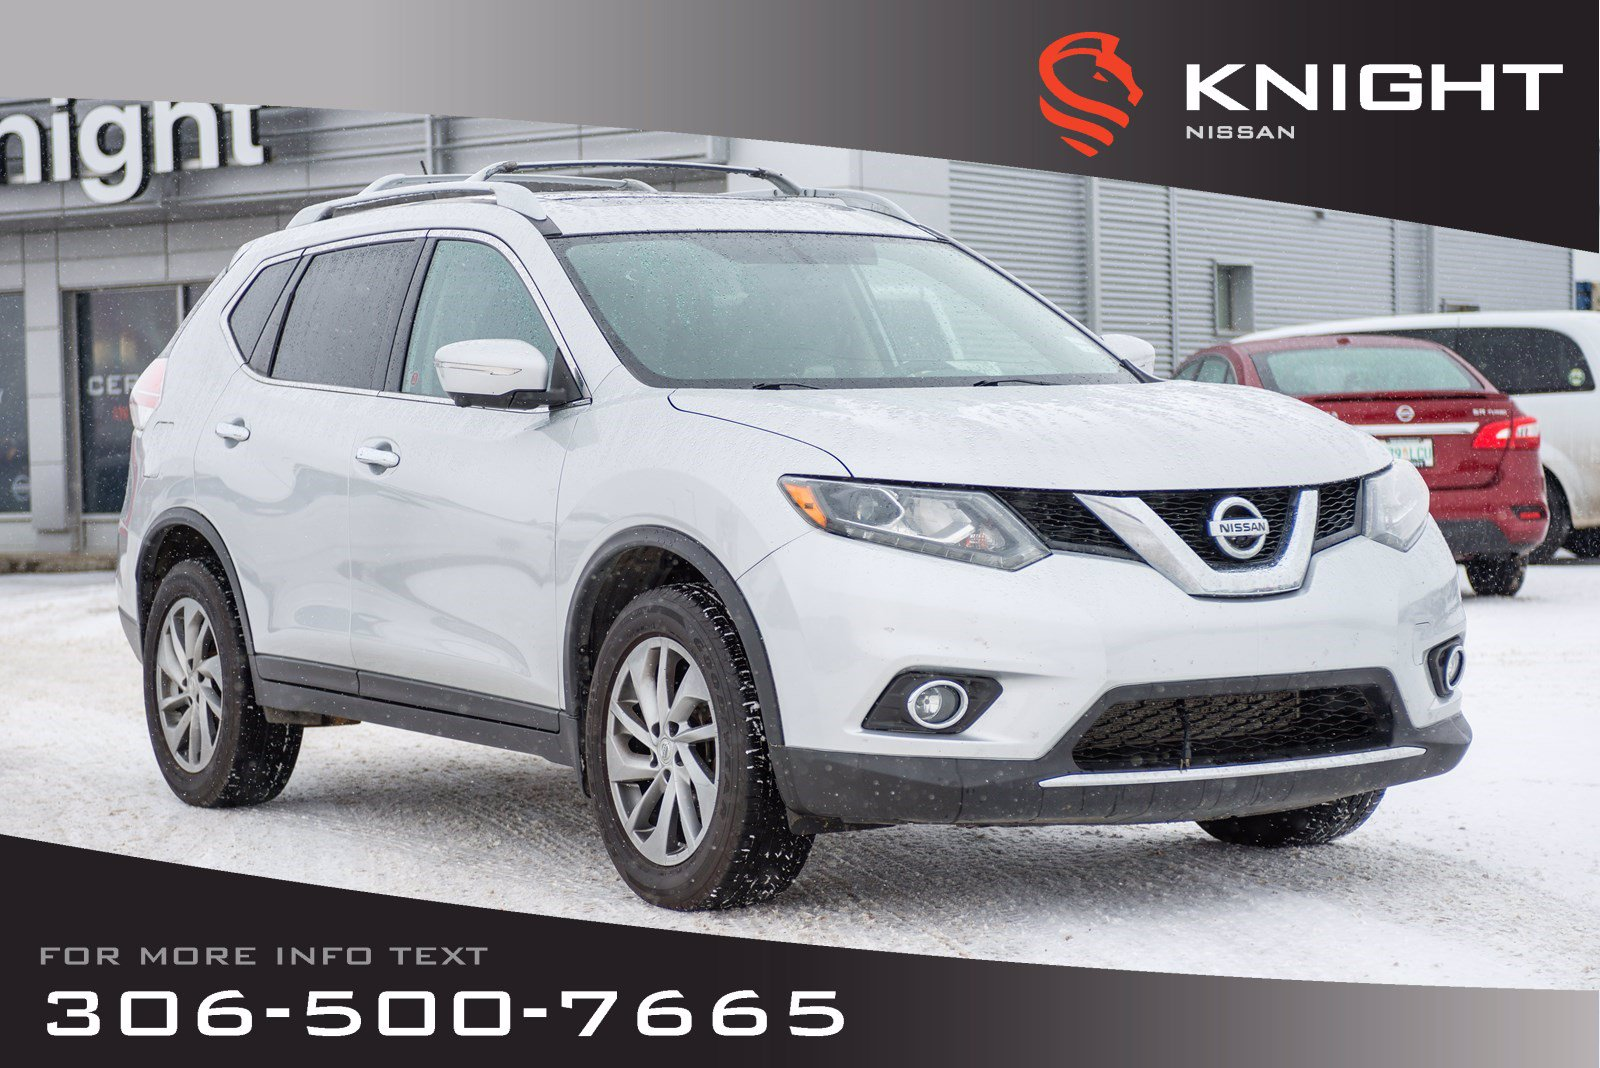 Certified Pre-Owned 2014 Nissan Rogue SL | Leather | Navigation | Heated Seats |